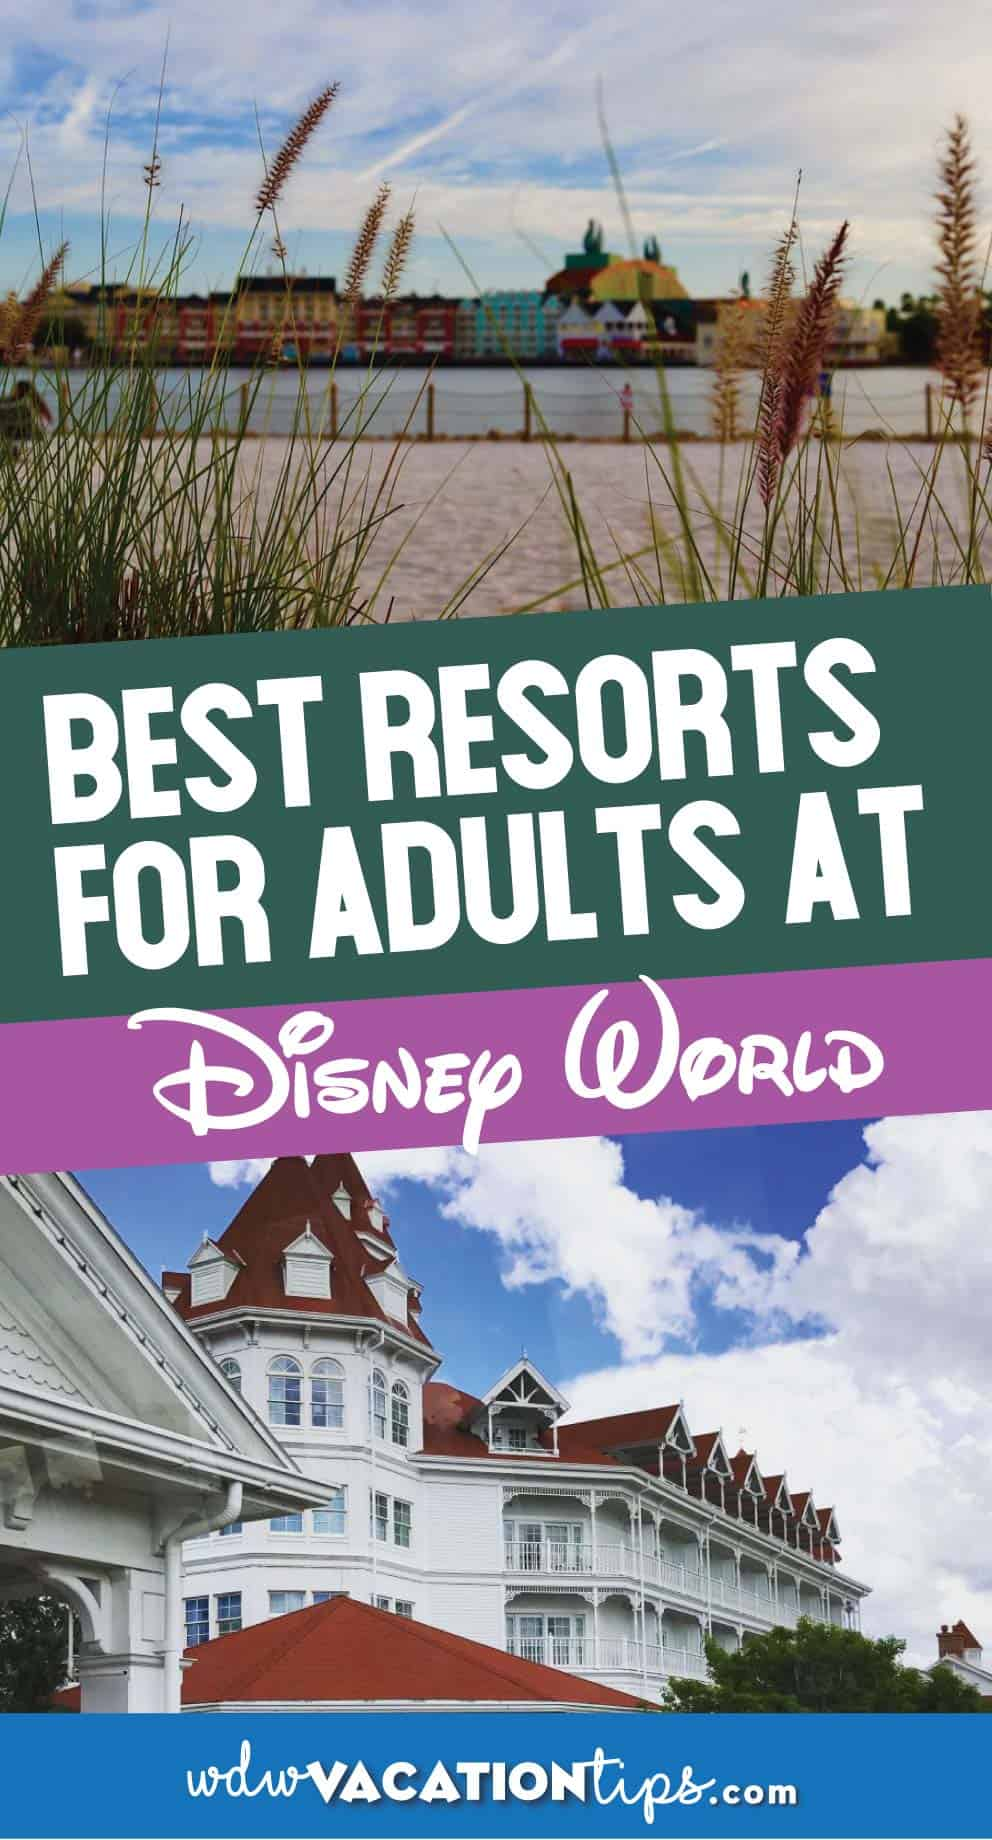 10 Best Disney World Hotels for Adults 5